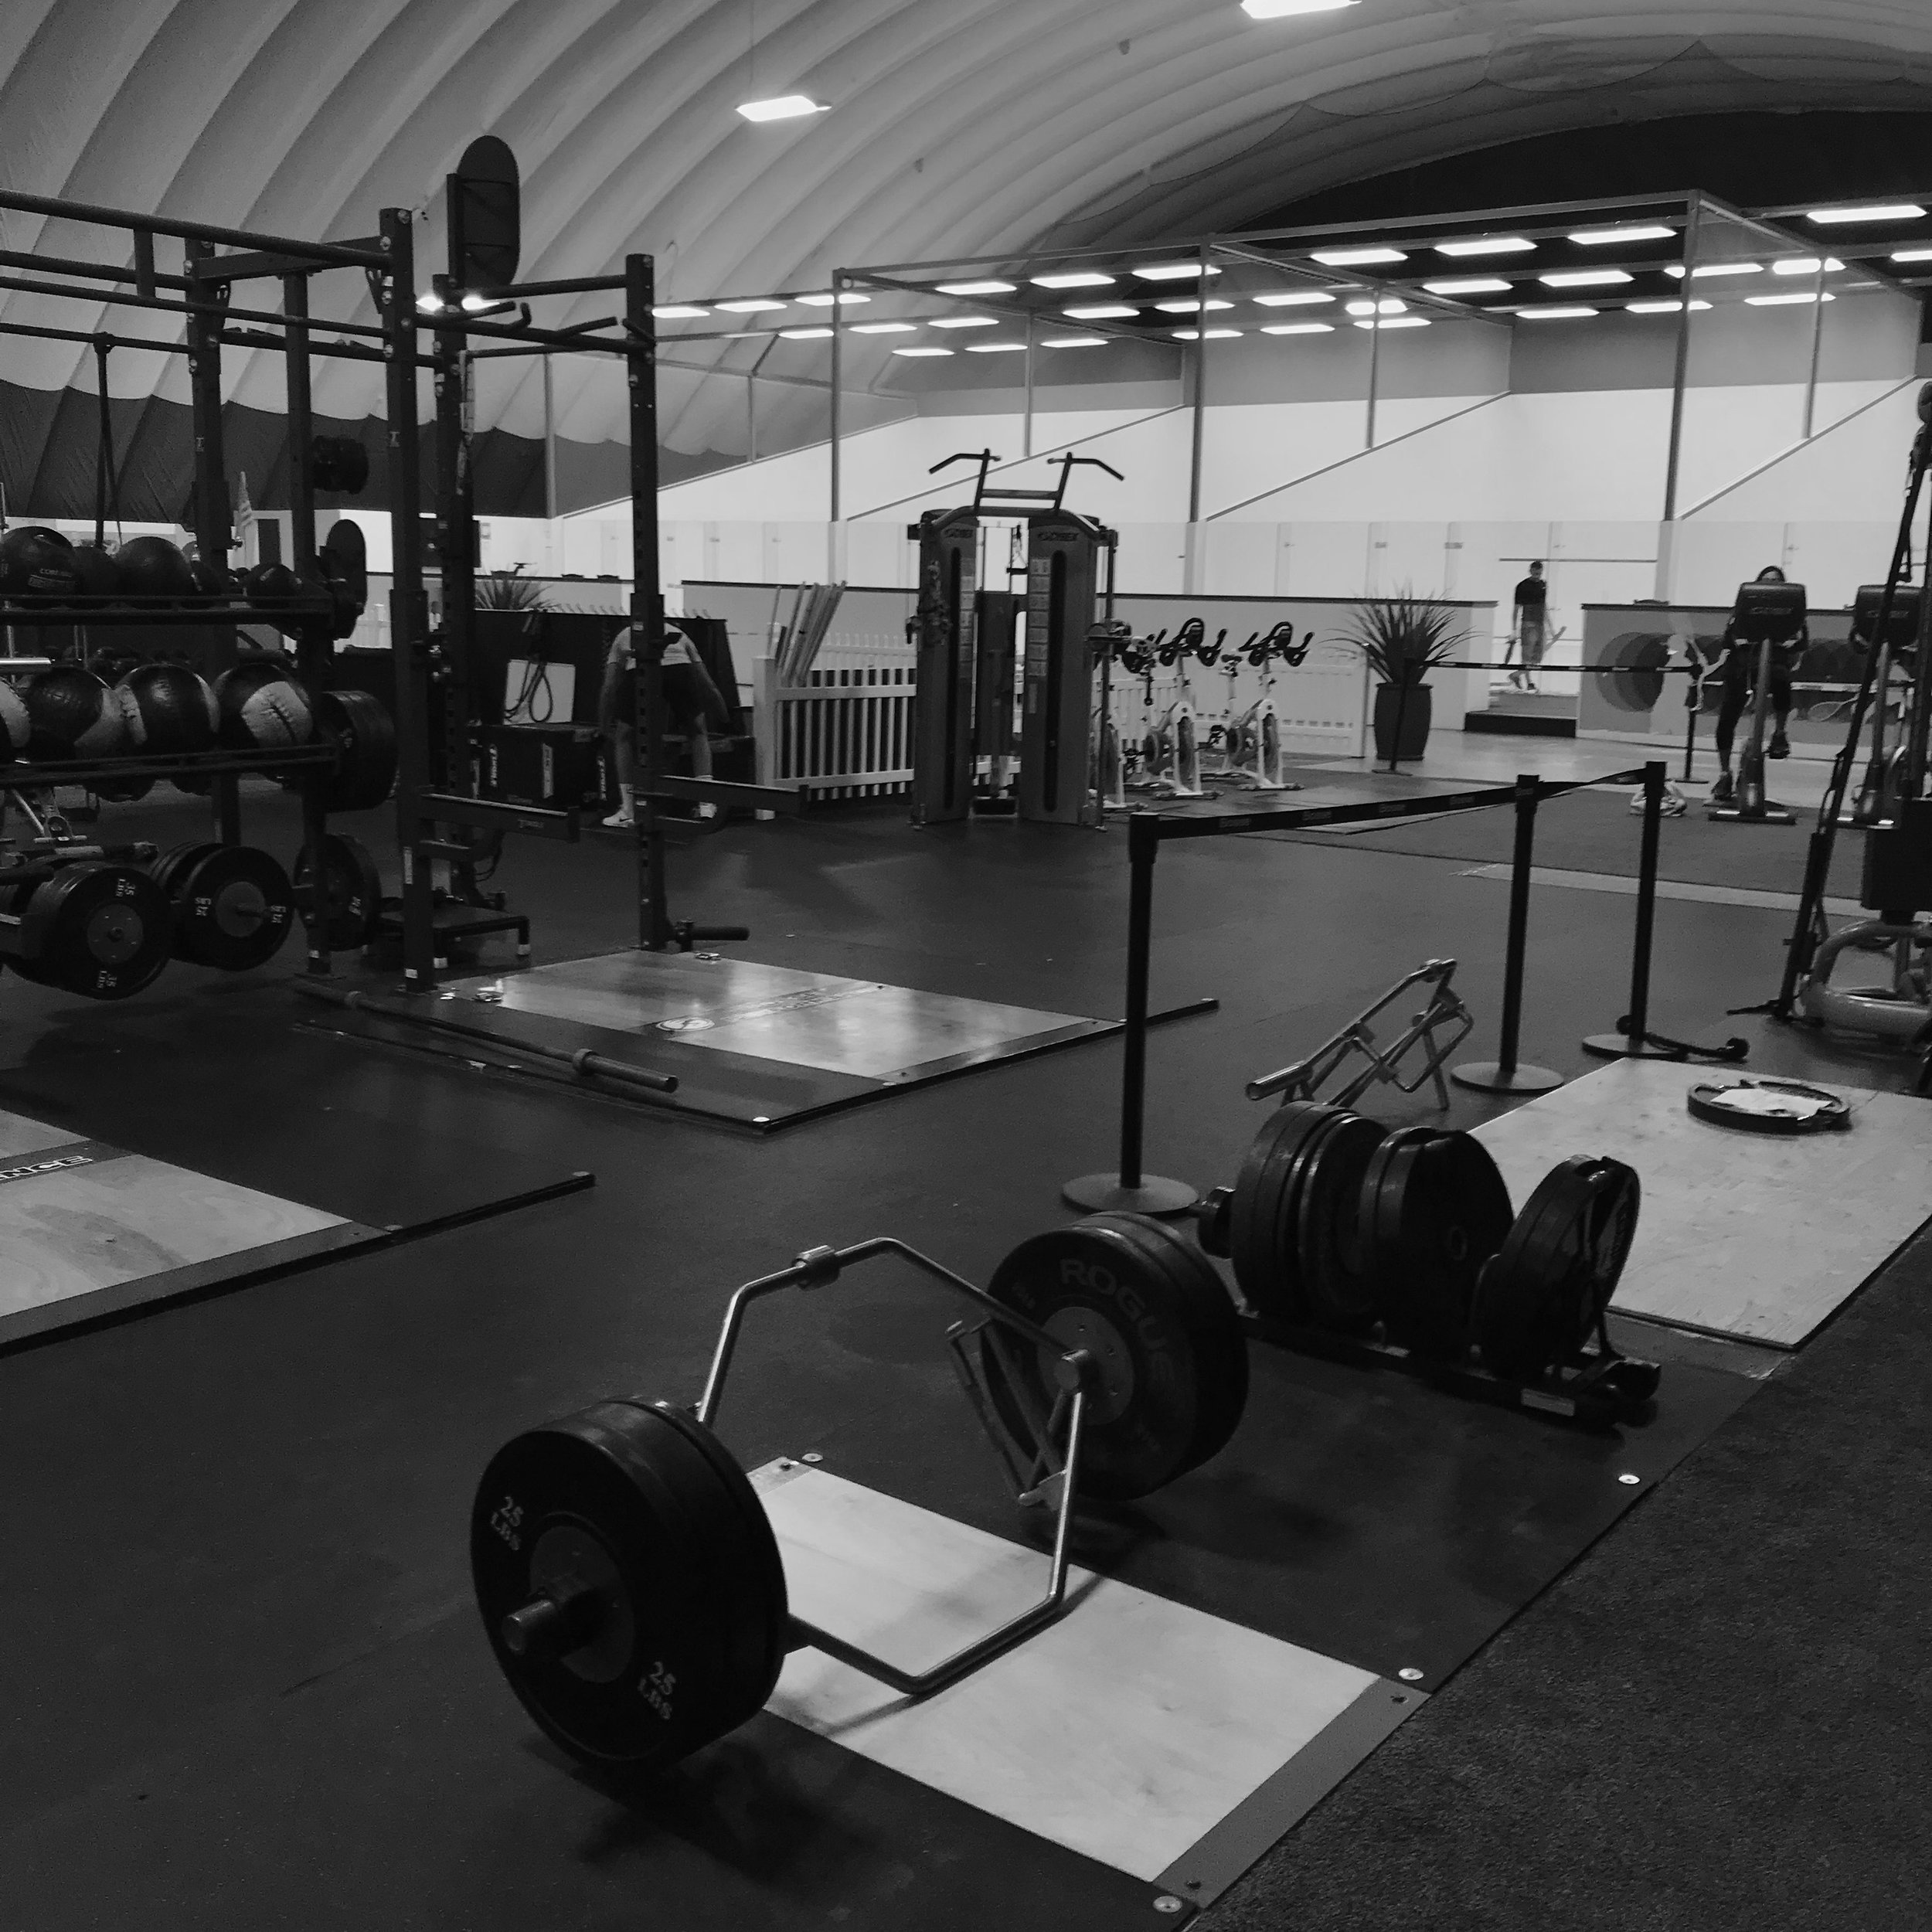 Fitness and gym facilities available for conditioning